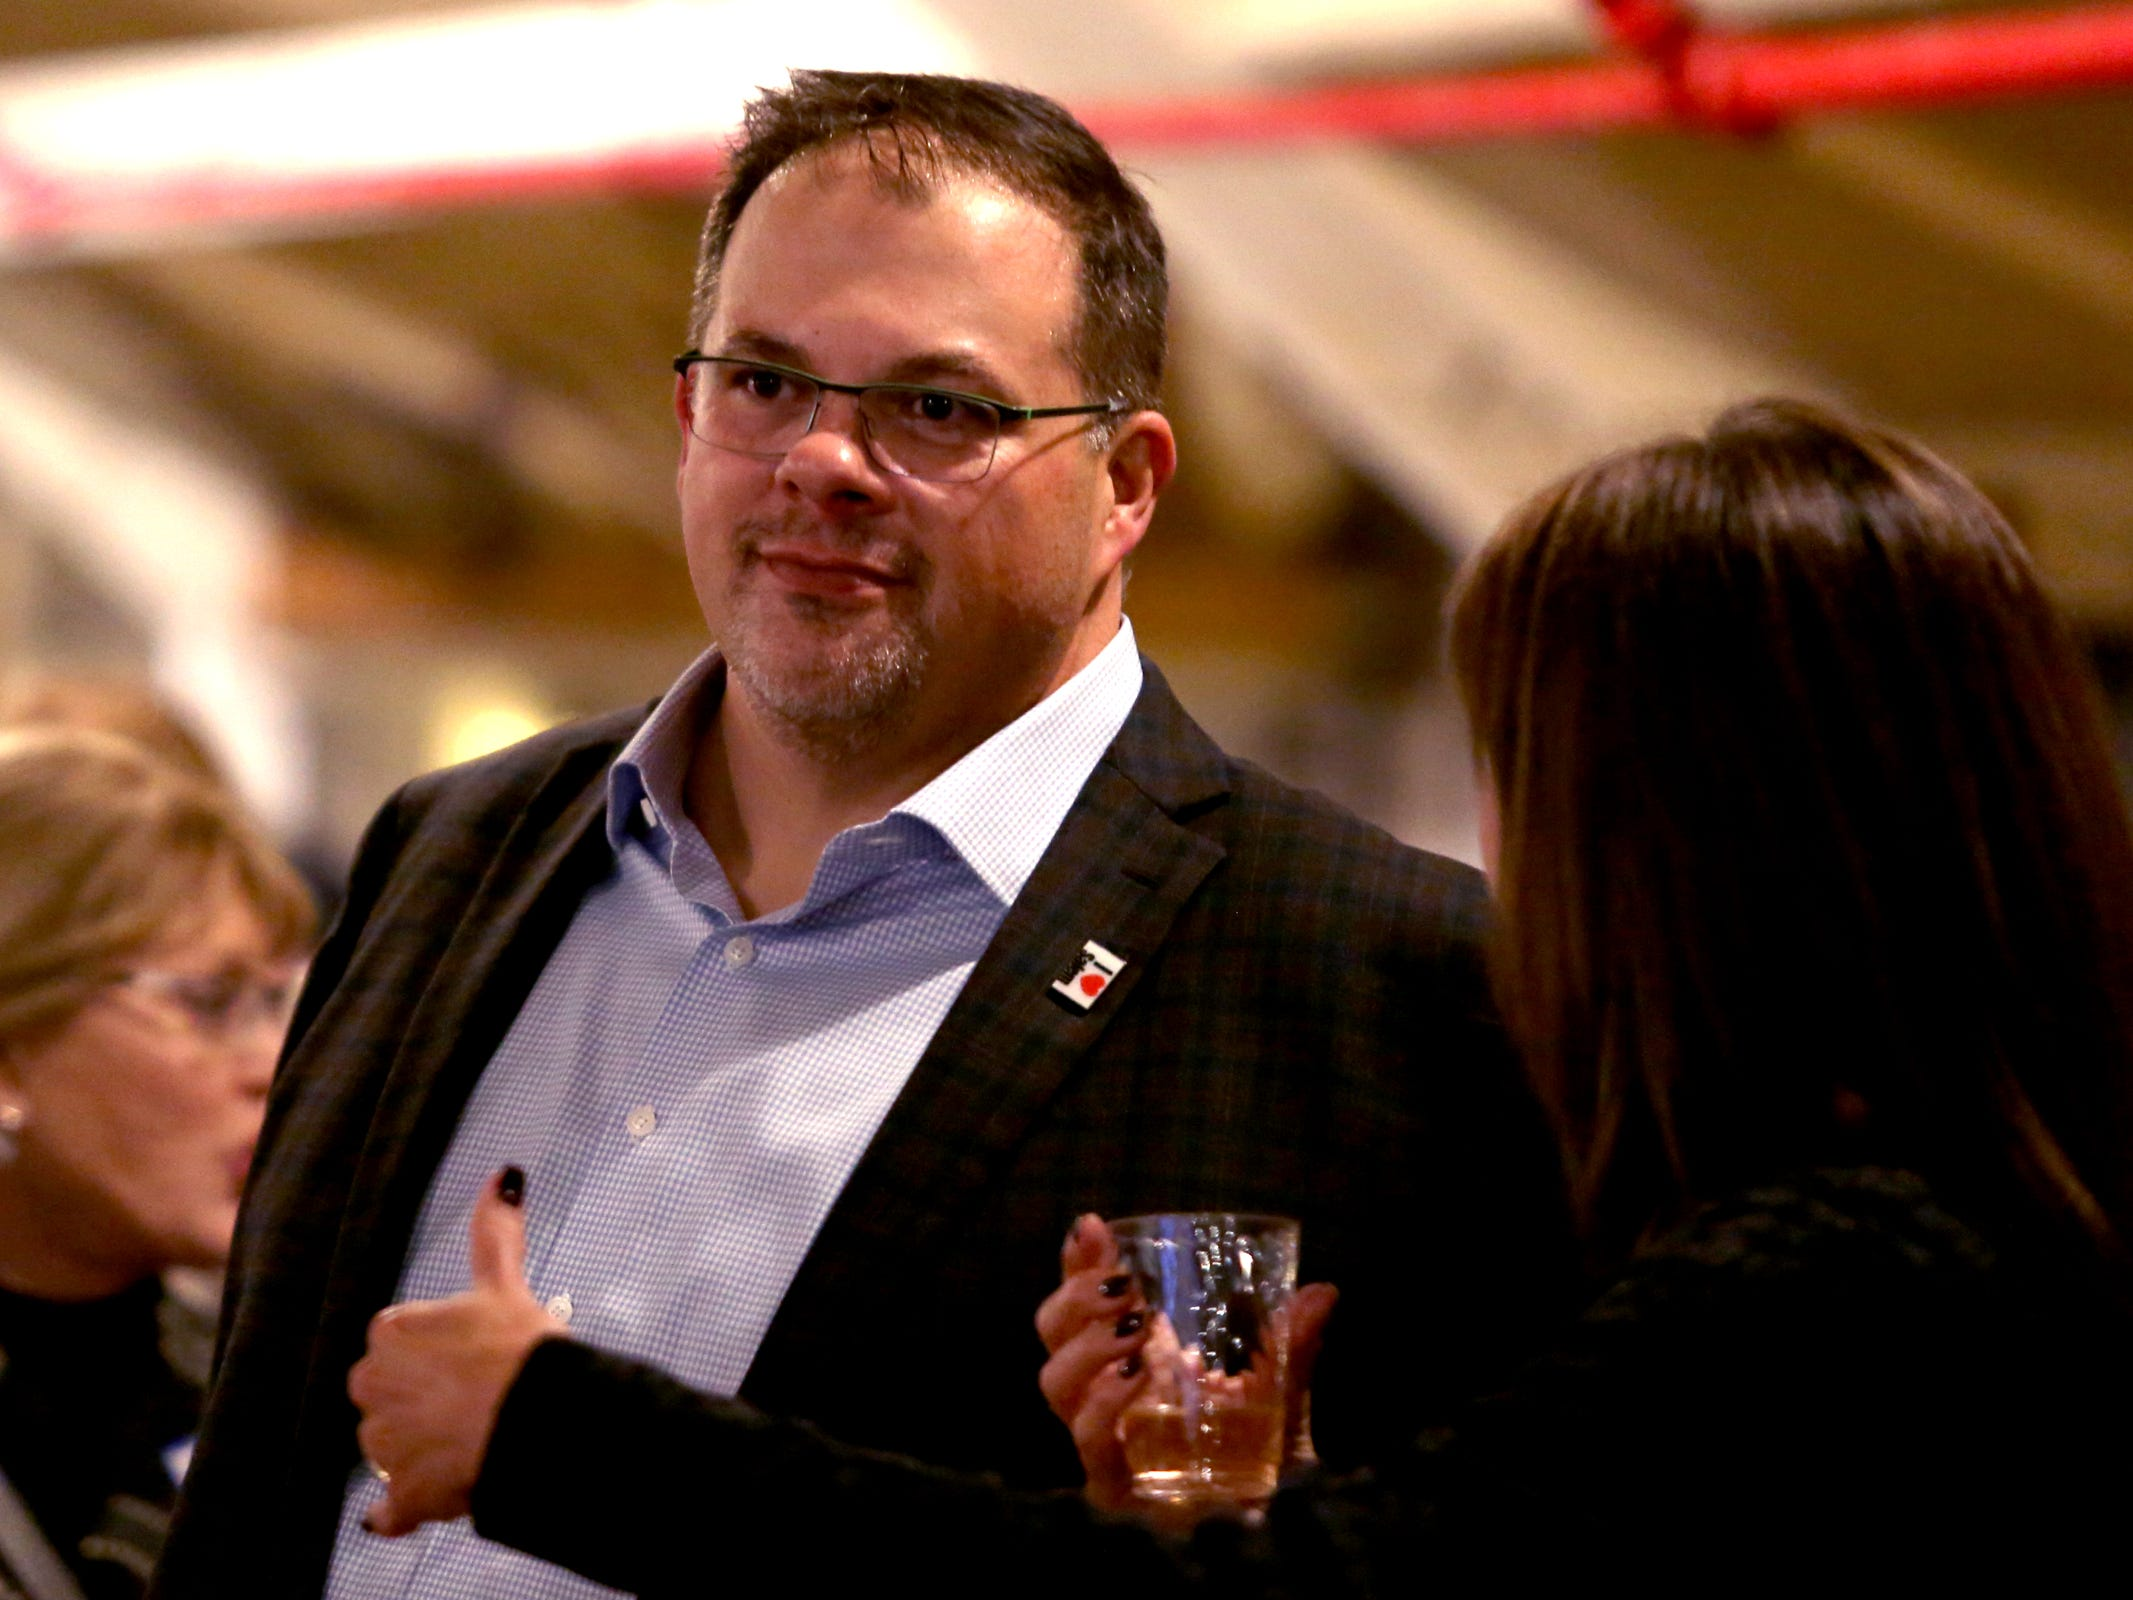 Chris Hoy, the Salem City Councillor for Ward 6, attends an election night party hosted by Marion County Democrats and Polk County Democrats at the Willamette Heritage Center in Salem on Tuesday, Nov. 6, 2018.